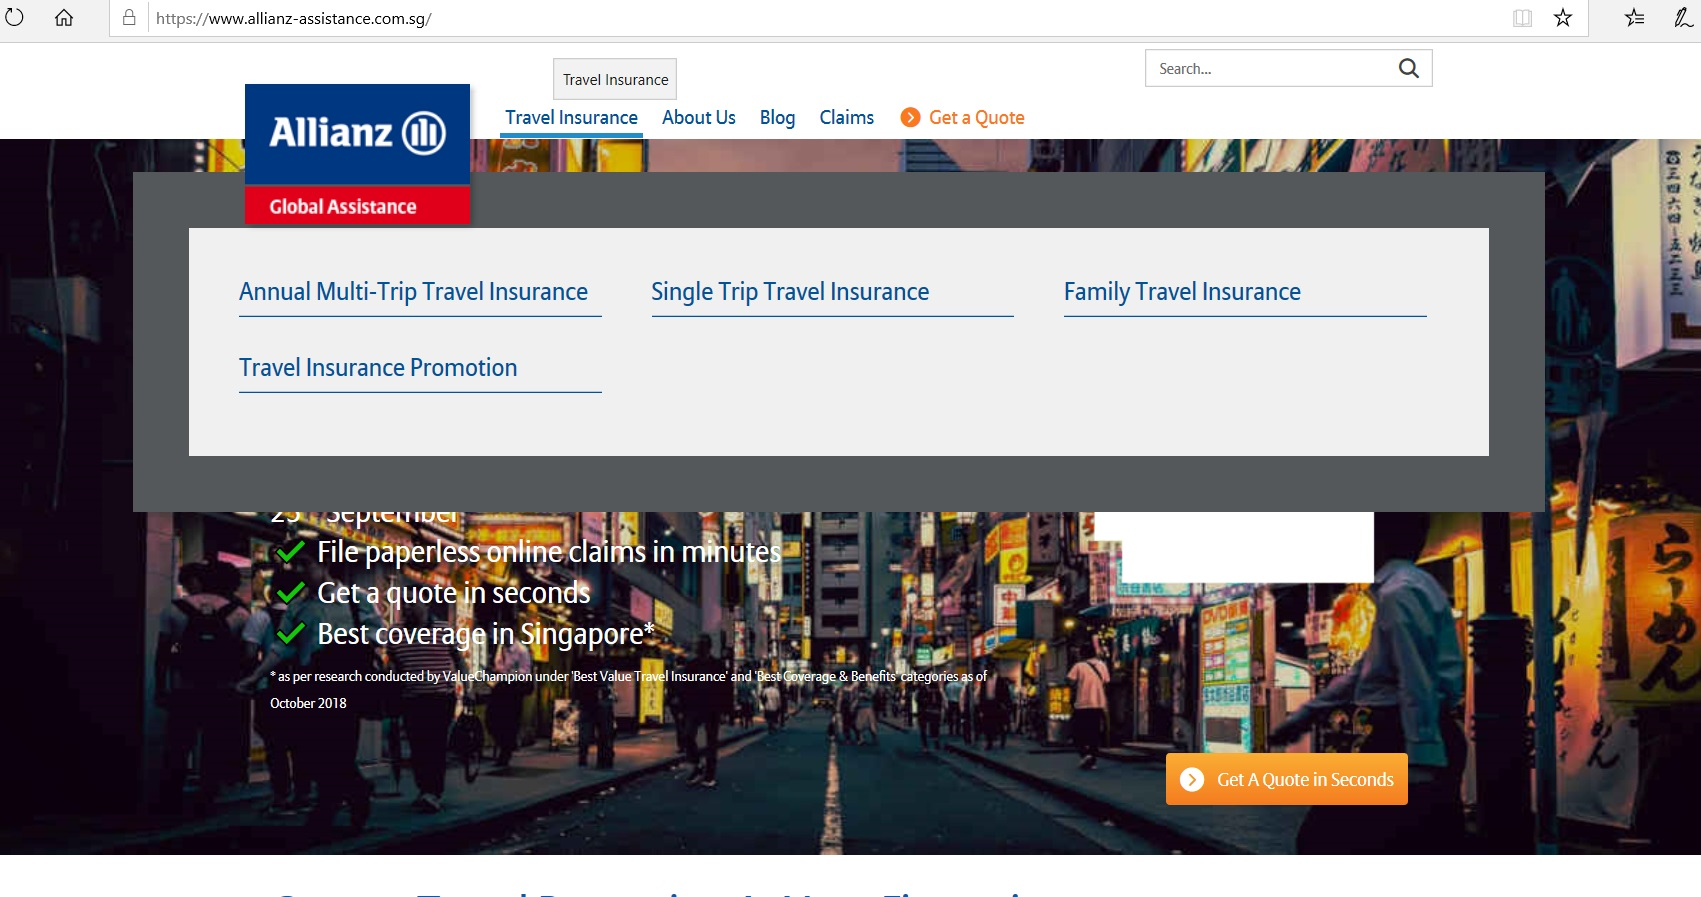 Dropdown of categories under Travel Insurance.